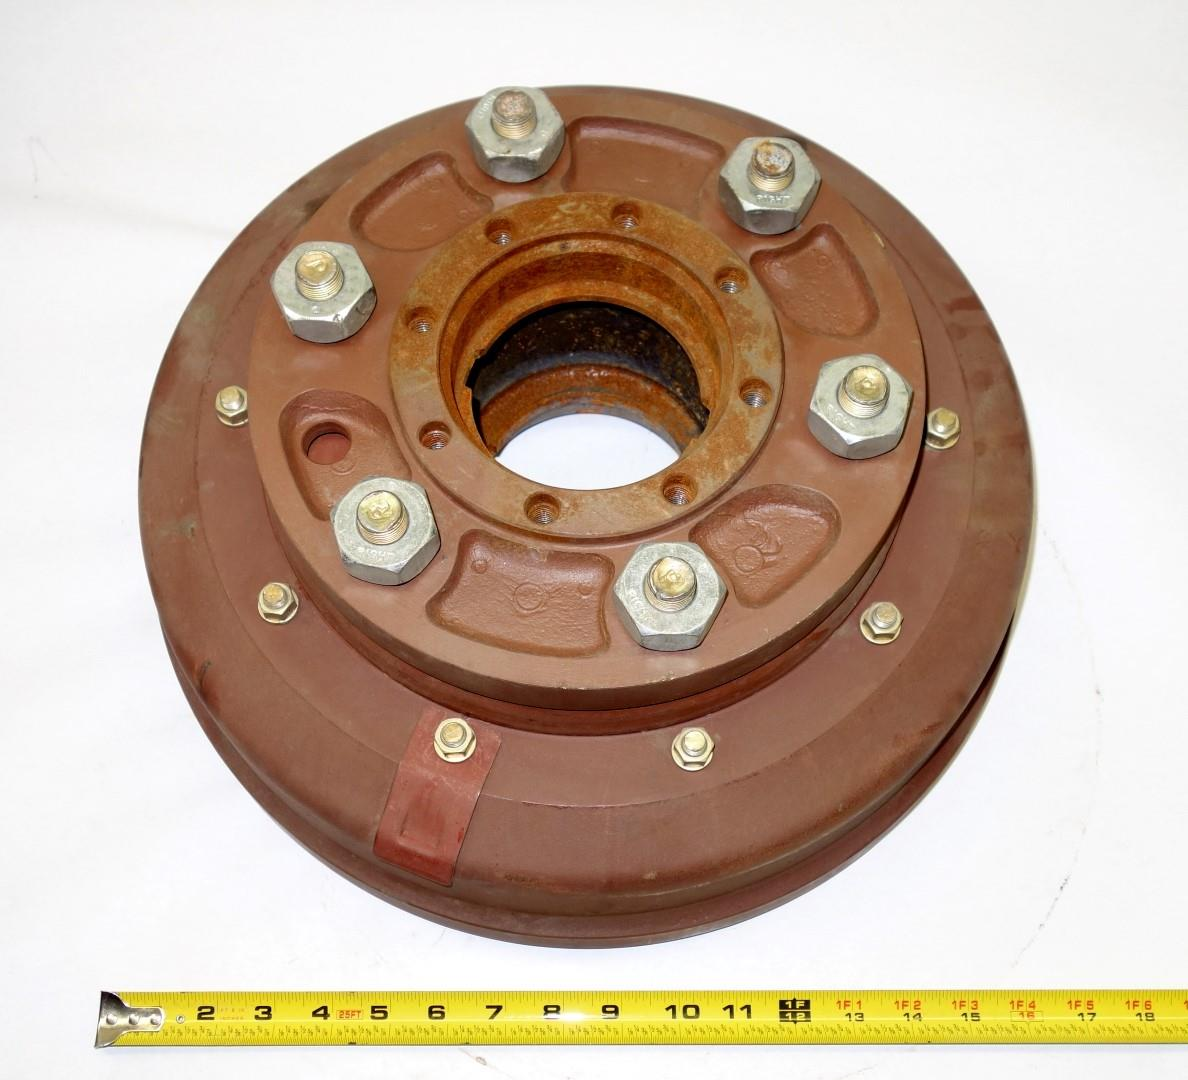 M35-663 | 2530-00-193-8183 Front Right Side Hub and Drum Assembly for M35 M35A1 and M35A2 Series NOS (2).JPG